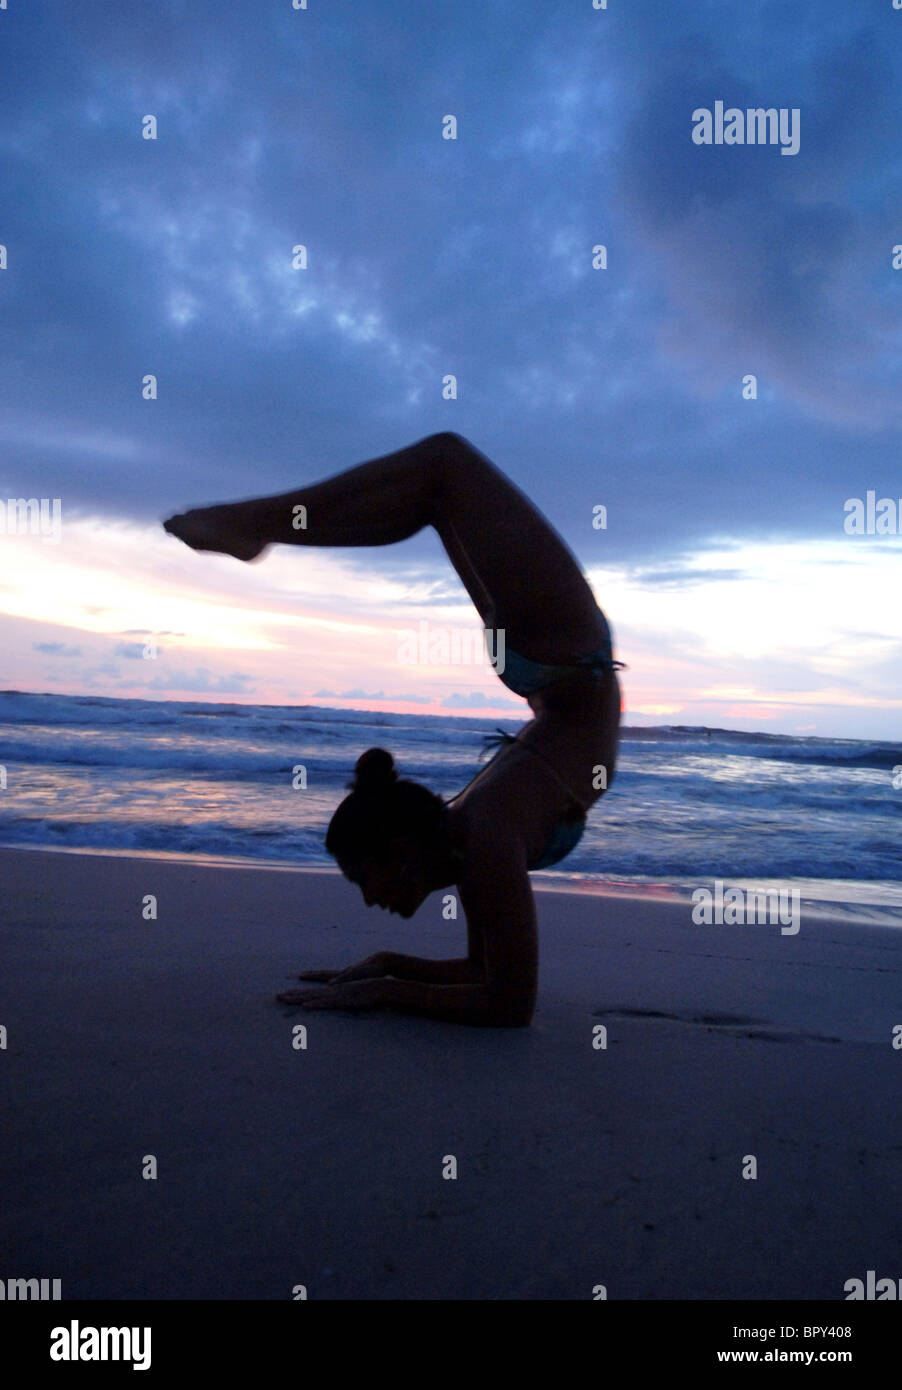 Female performs yoga on beach near water - Stock Image